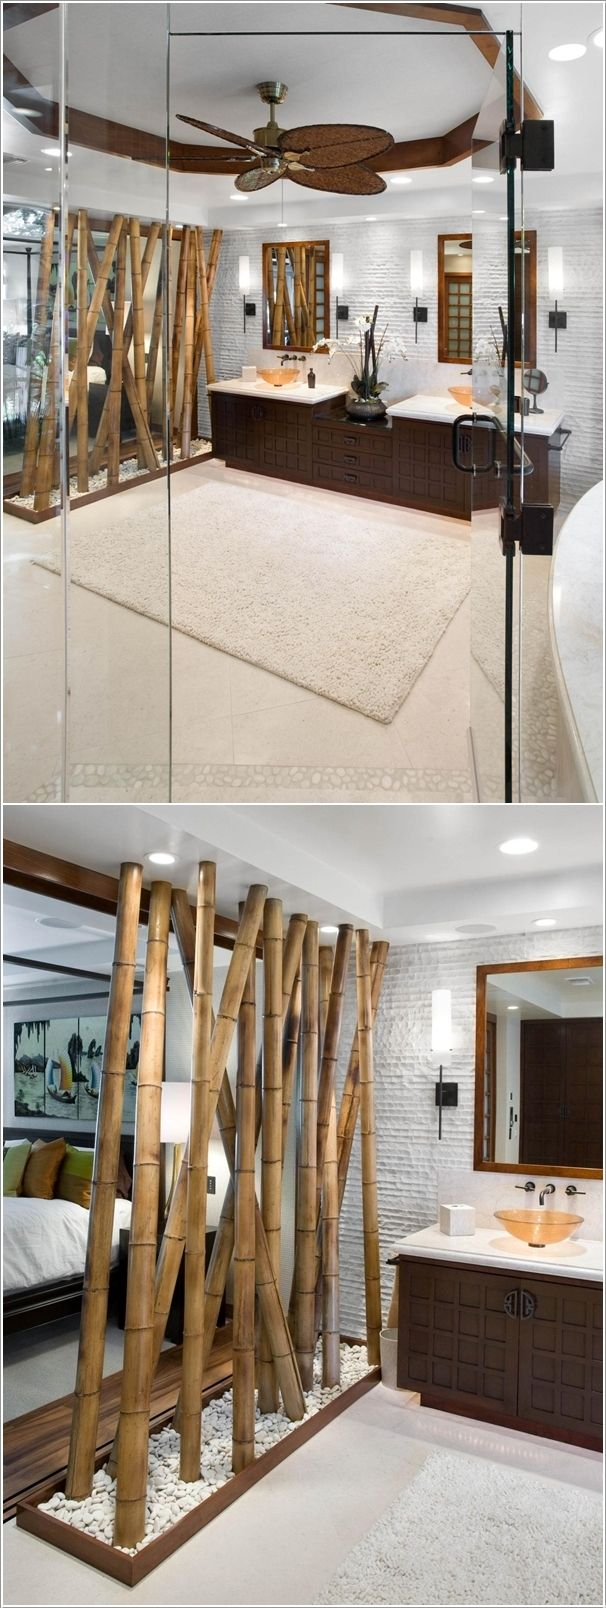 Uses for bamboo around the house - A Pebble and Bamboo Divider Between a Master Bedroom and a Bathroom